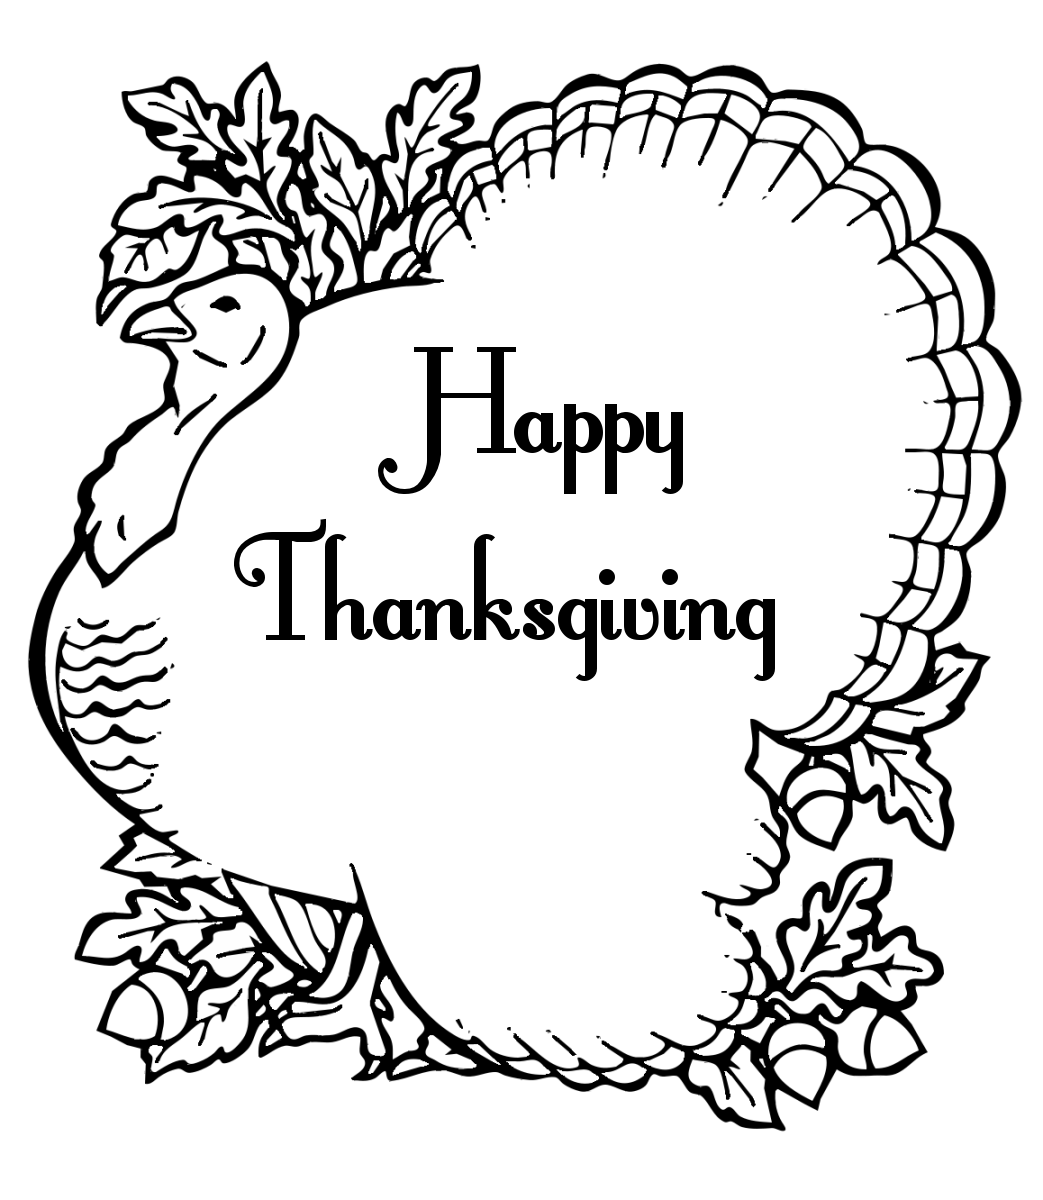 tanksgiving coloring pages - photo#8